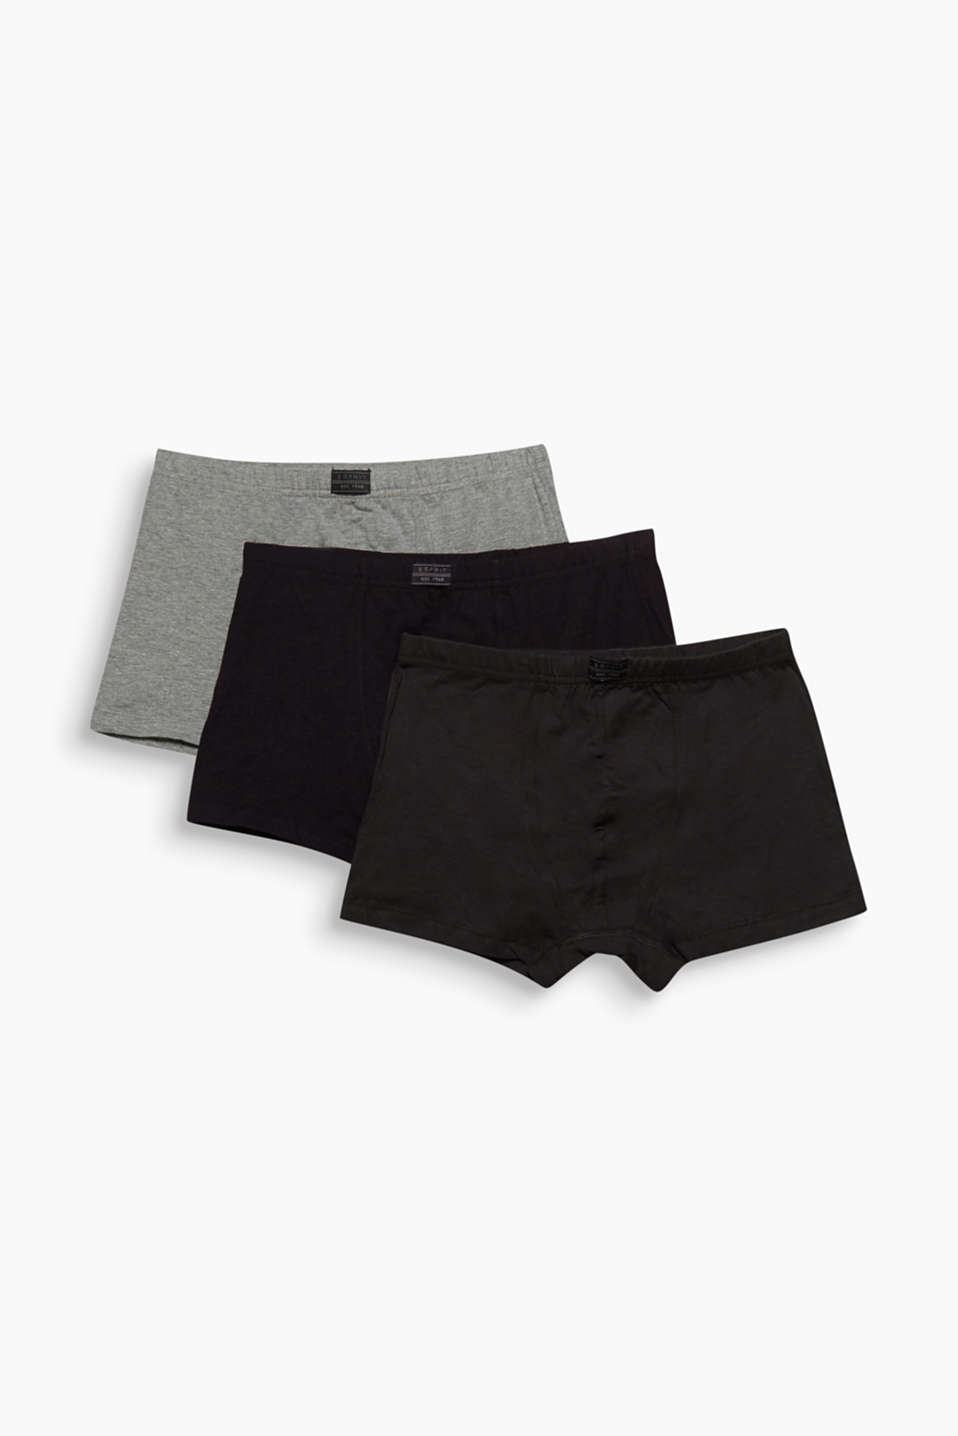 Your basic every day underwear: hipster cotton shorts with added stretch for comfort